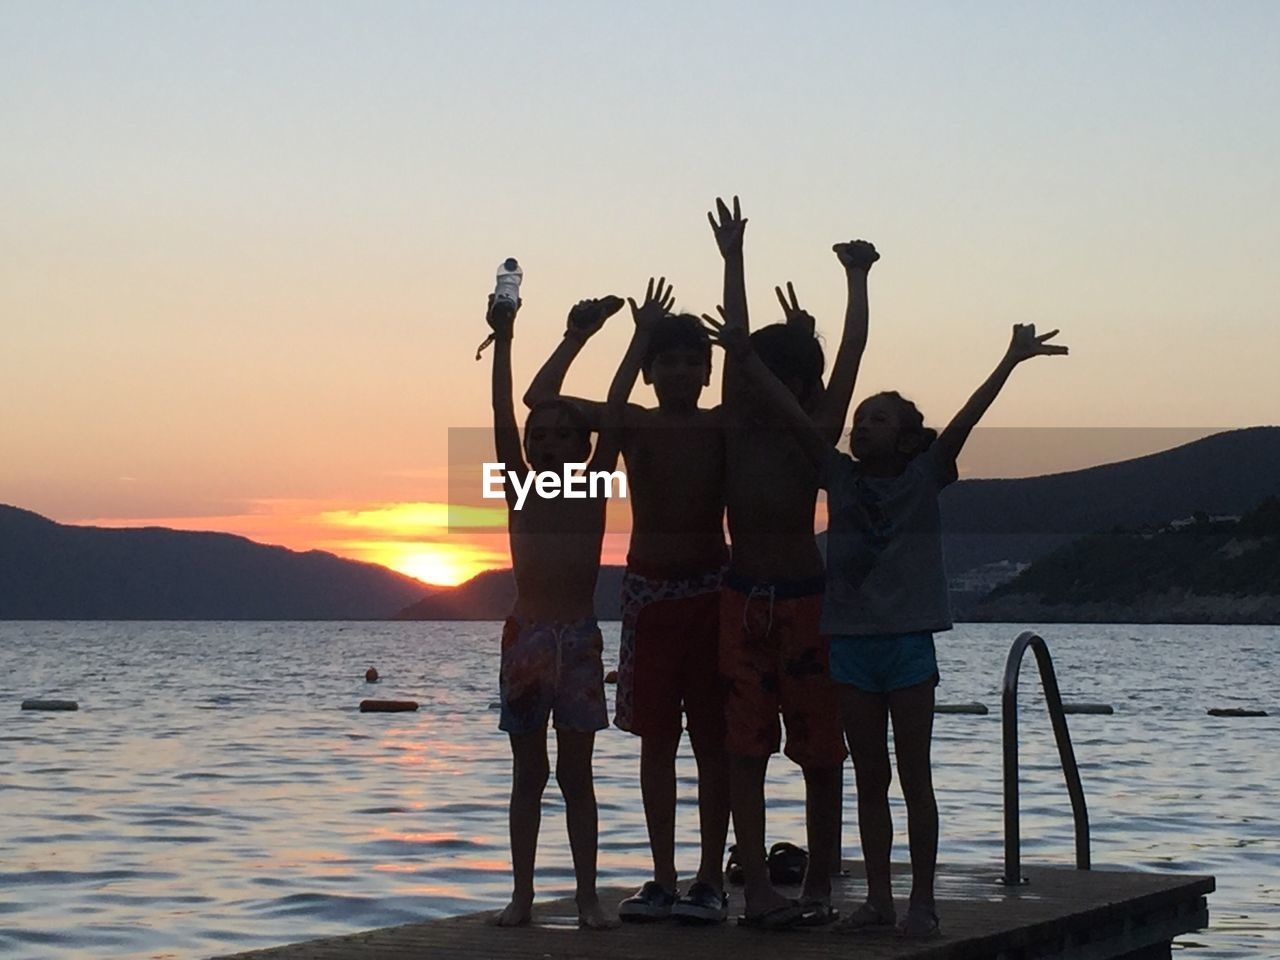 sky, water, sunset, real people, group of people, men, leisure activity, arms raised, friendship, human arm, lifestyles, standing, nature, togetherness, sea, adult, people, beauty in nature, outdoors, positive emotion